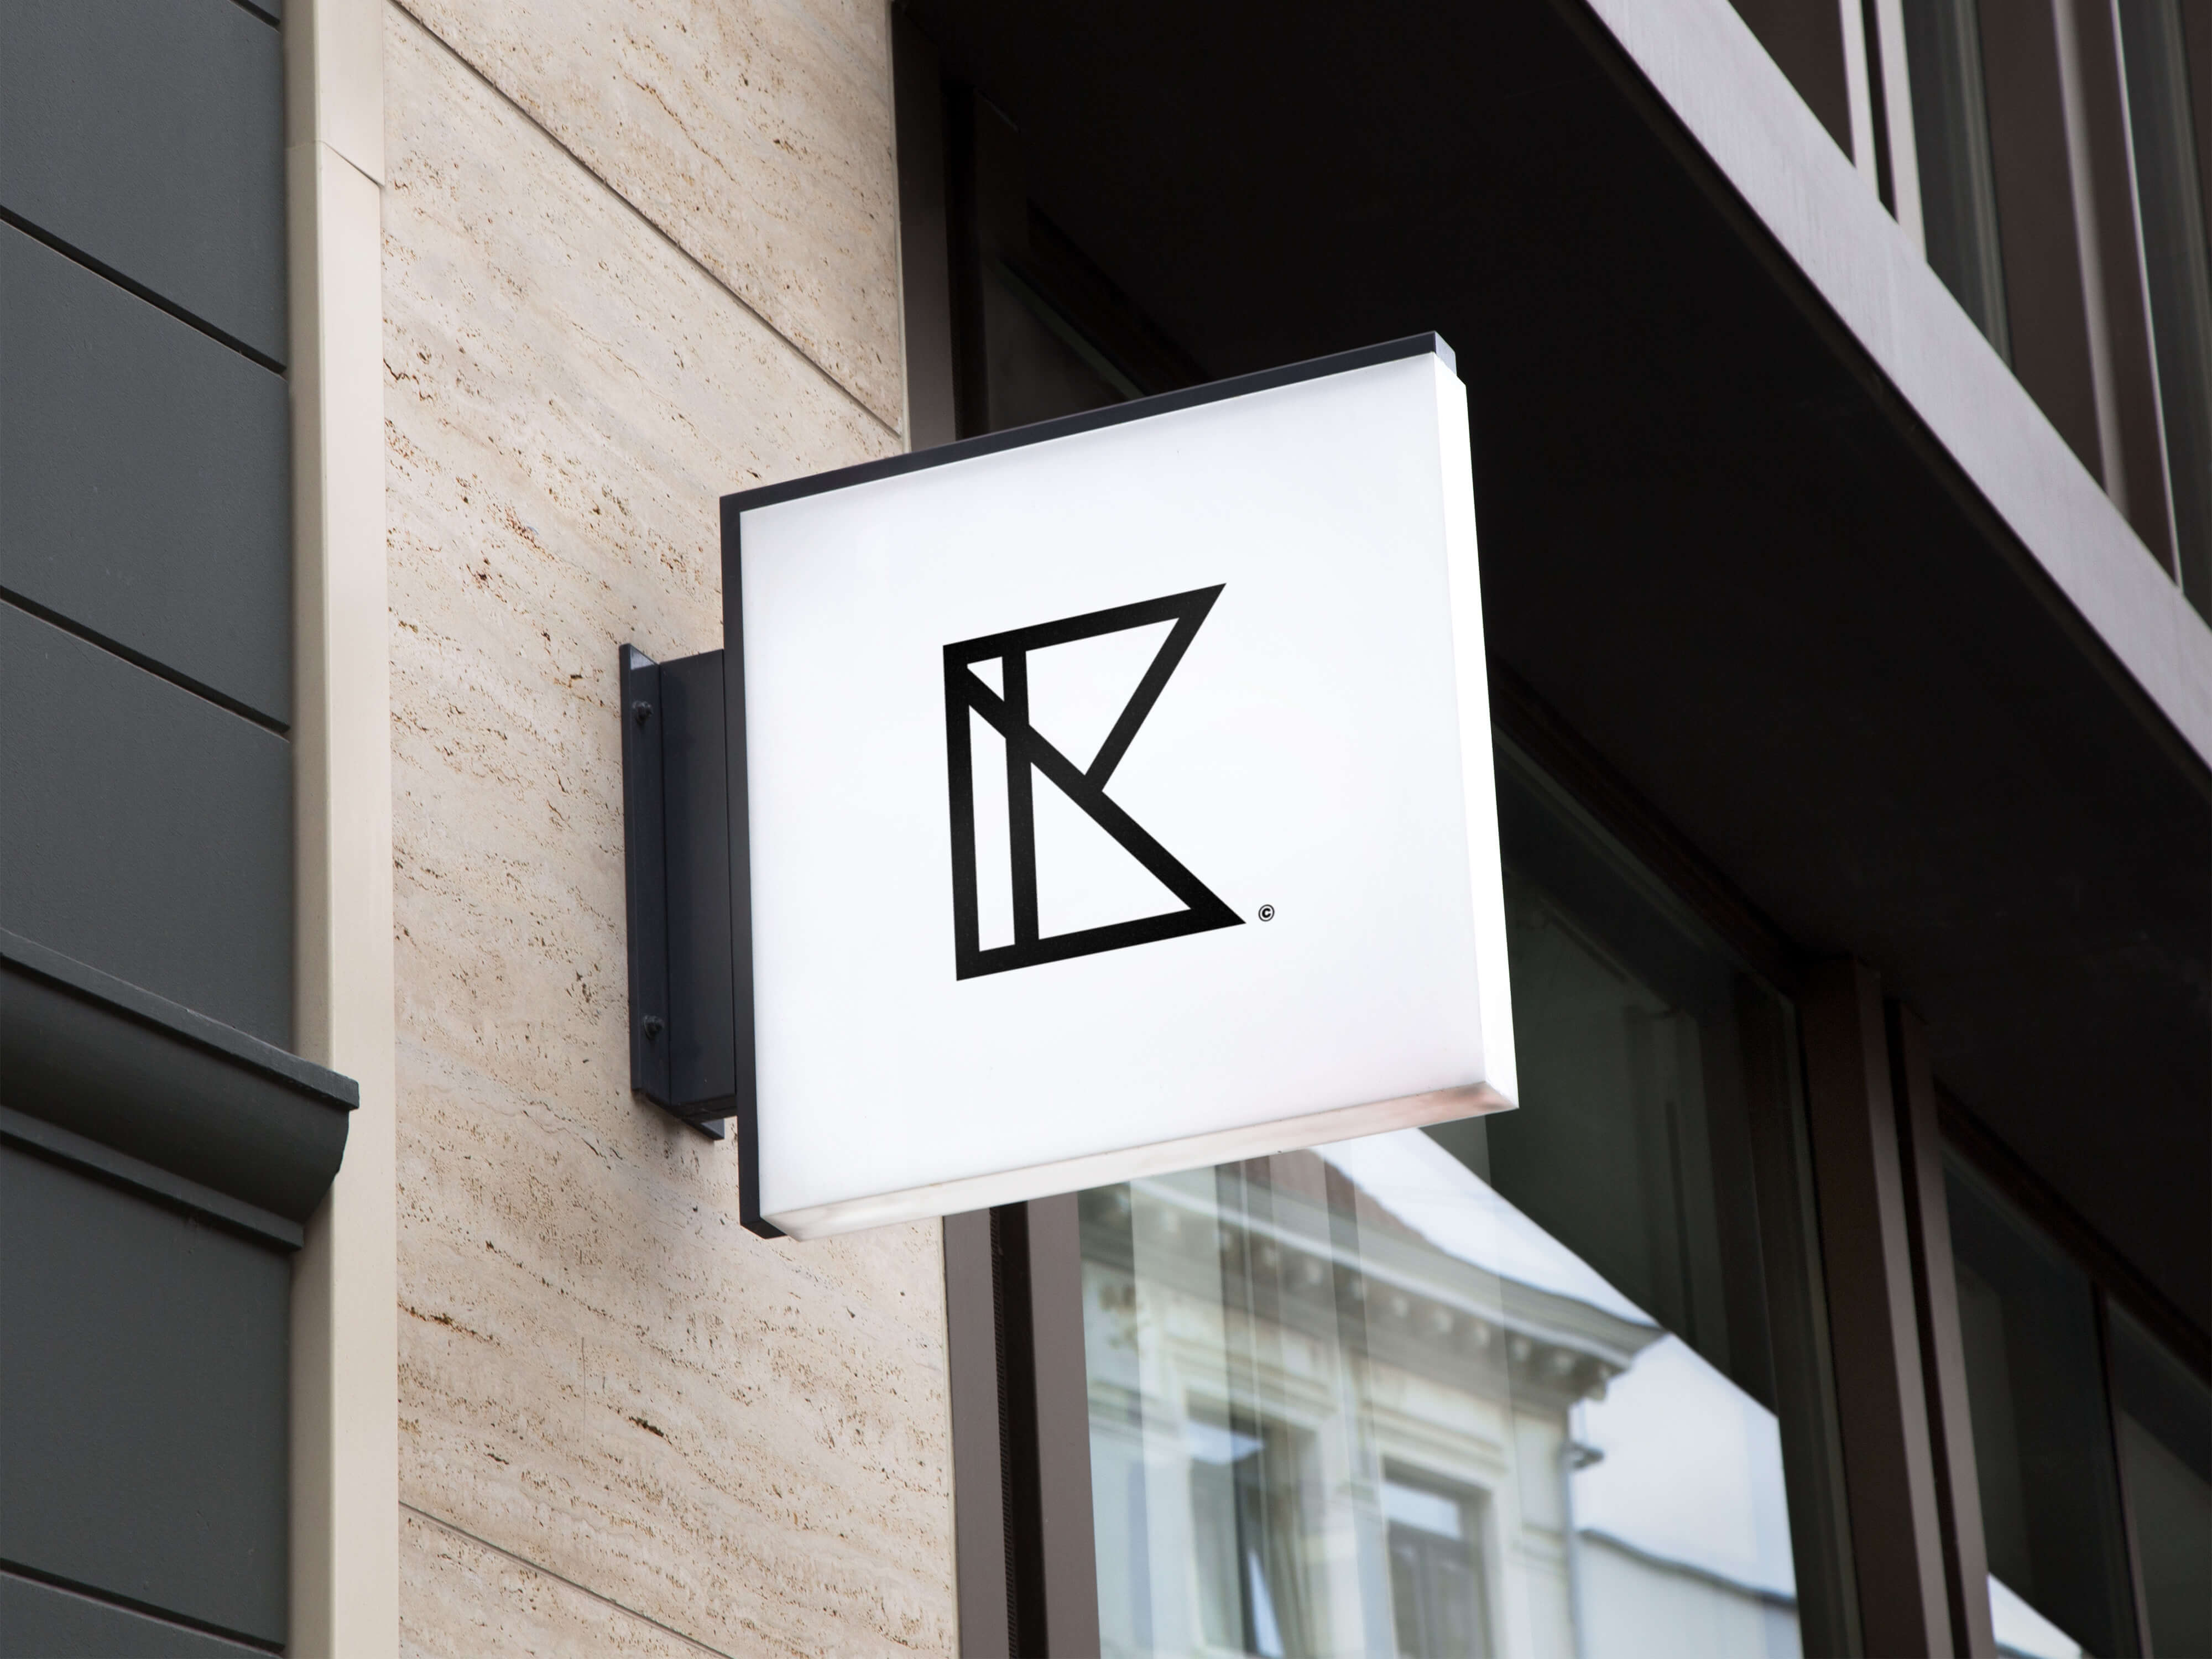 A white sign on a building with the Iverson and Kaine logo